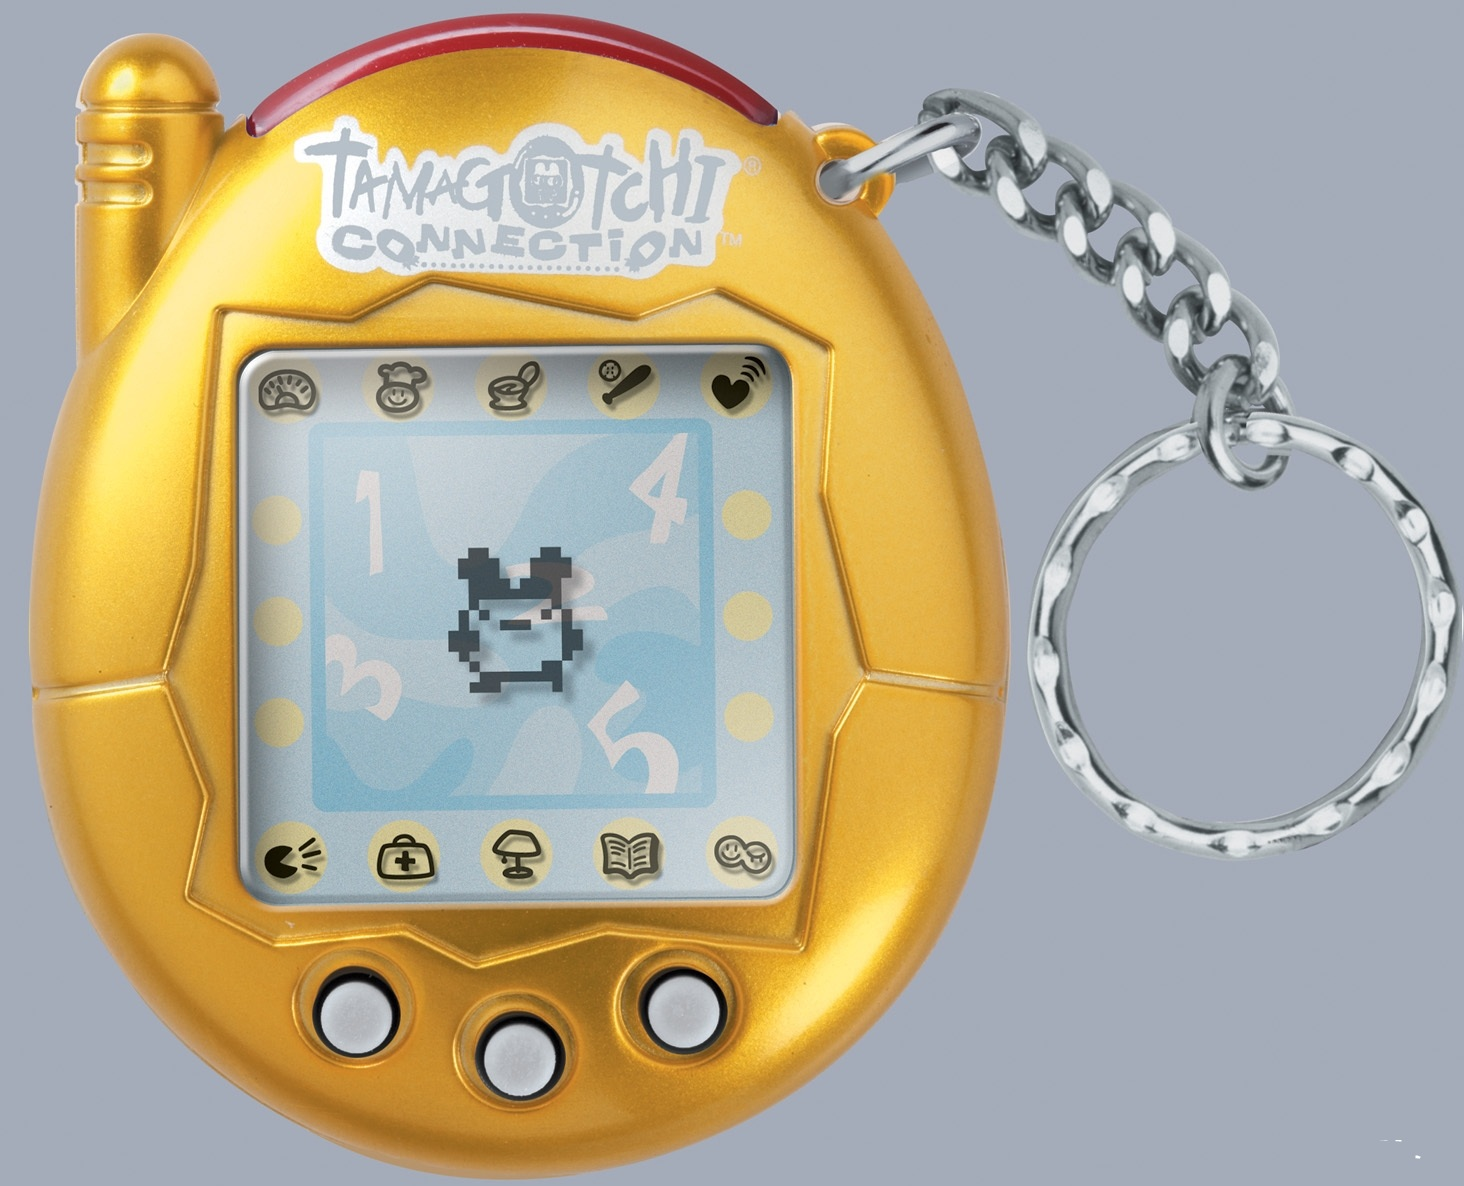 Tamagotchi deals